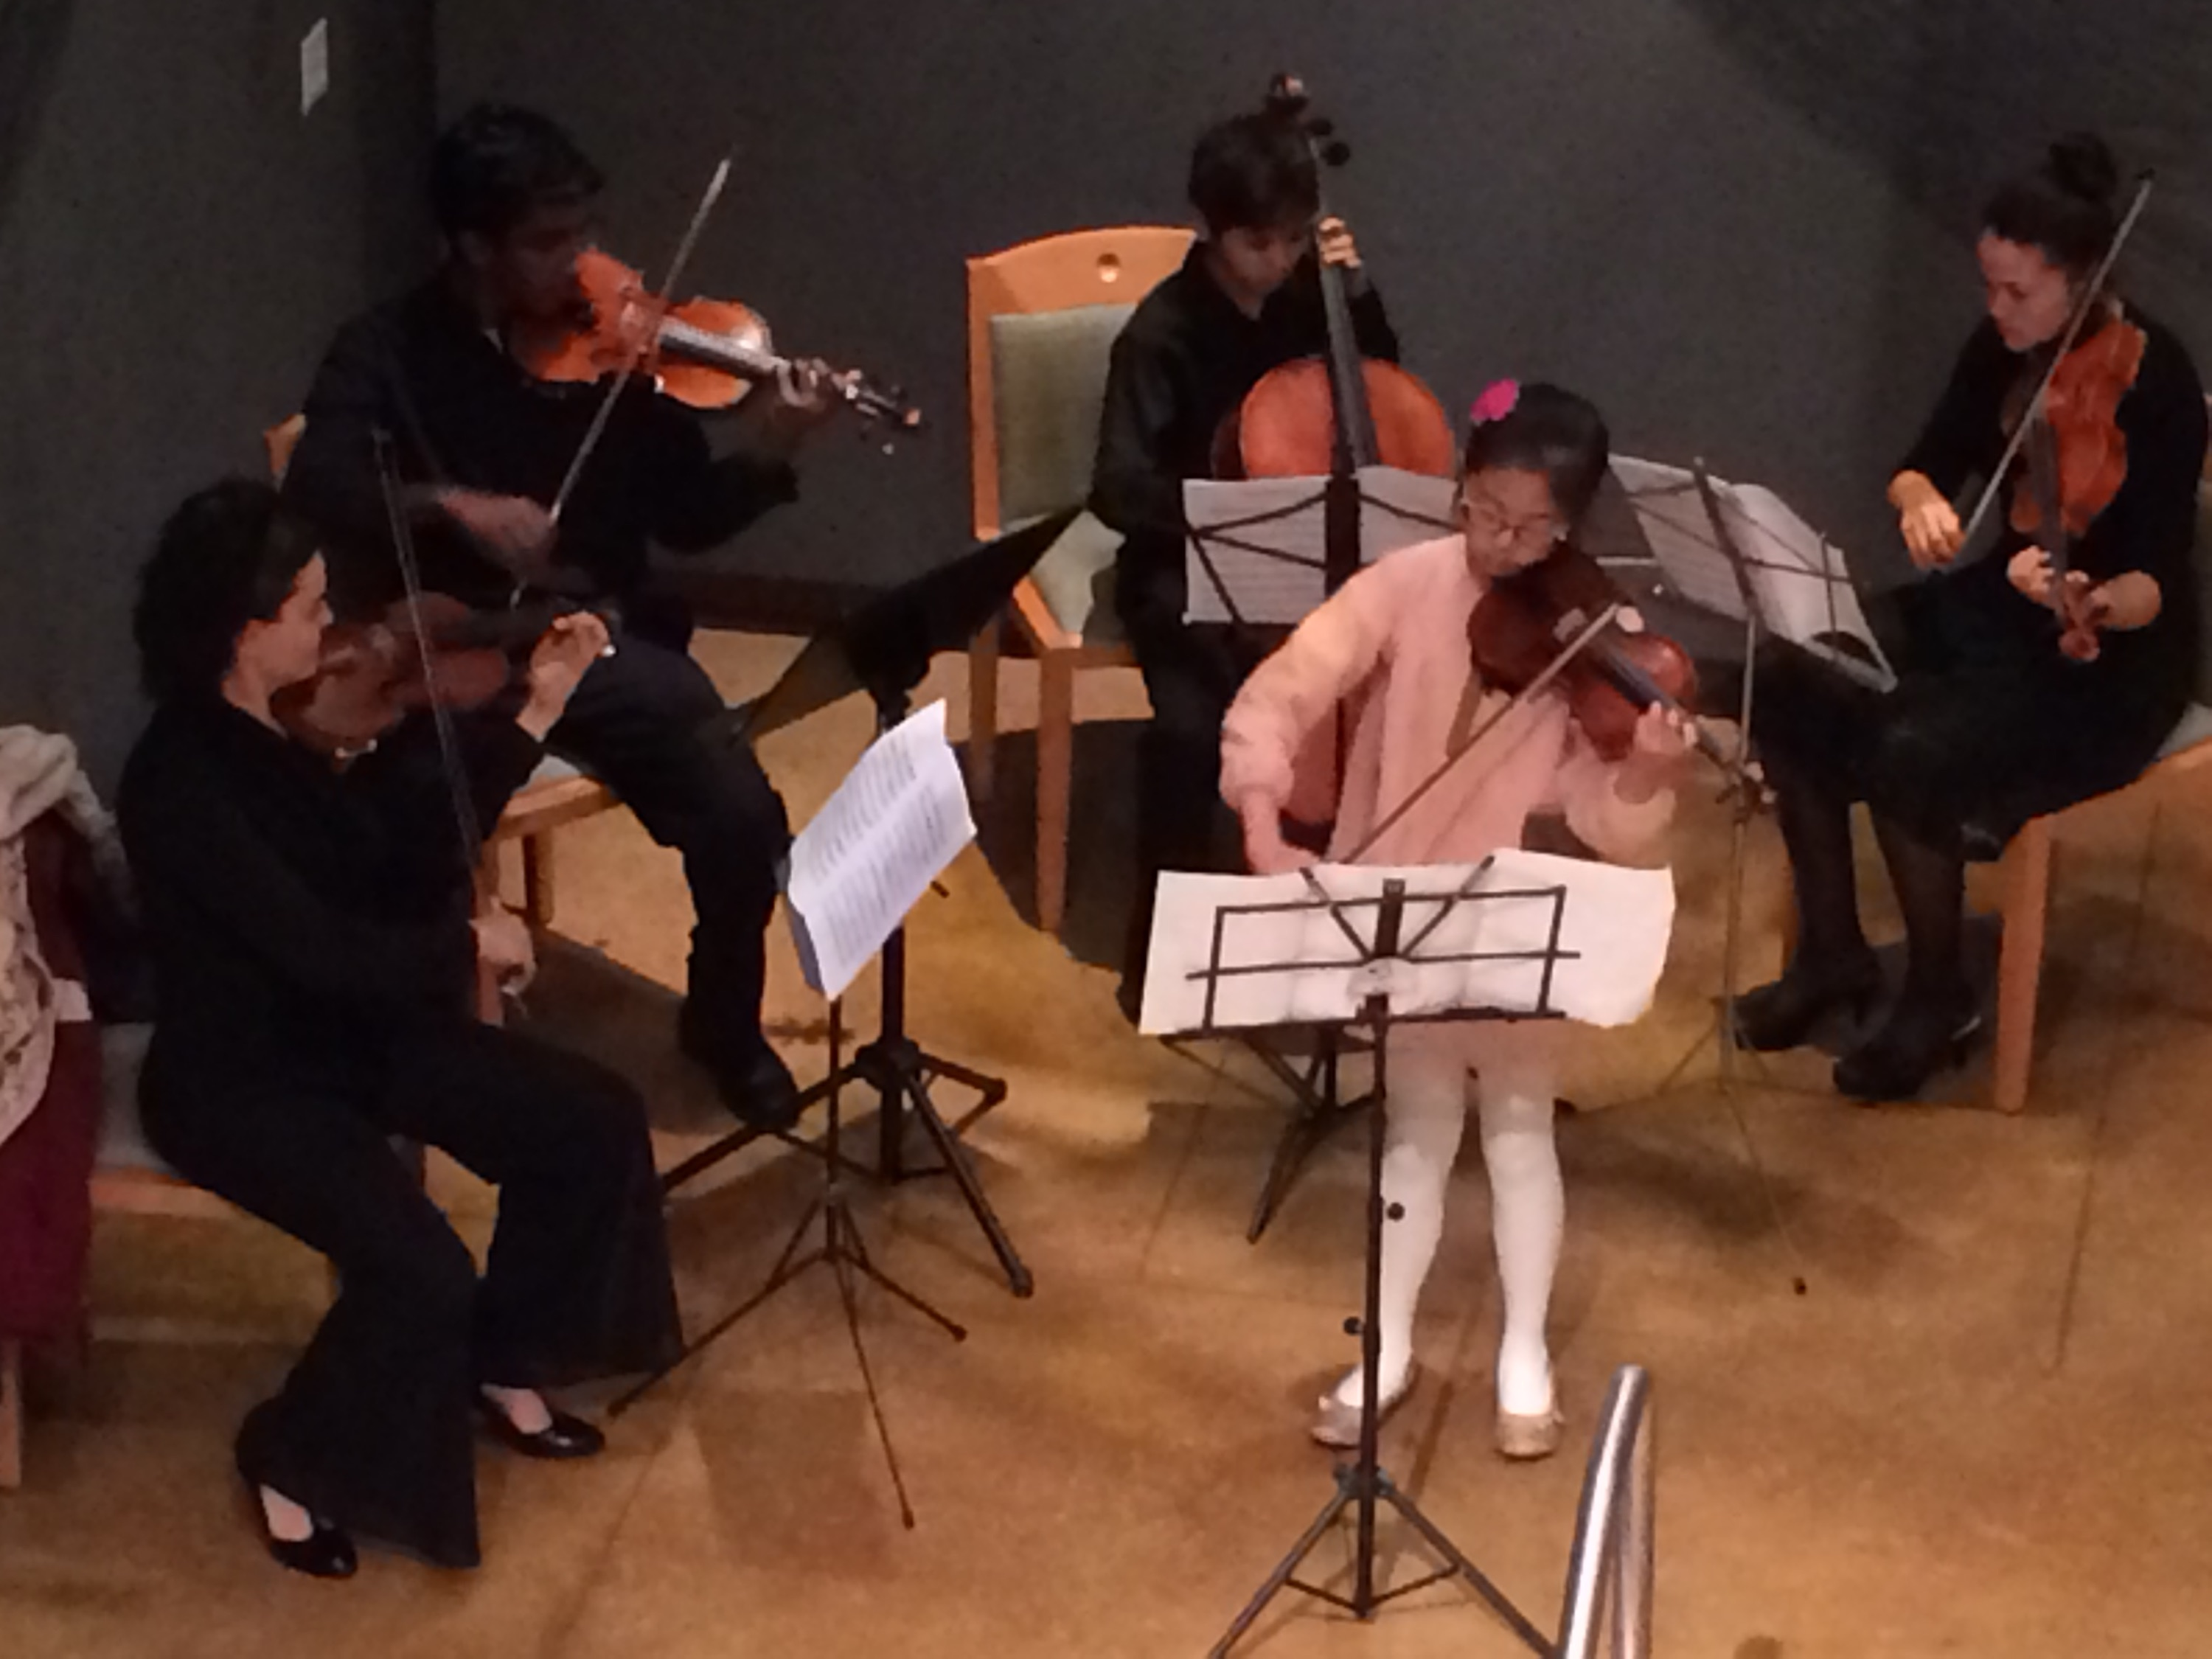 Sat. 1/23 6pm – Winter Concert: Students of the Virtuosi Music Academy